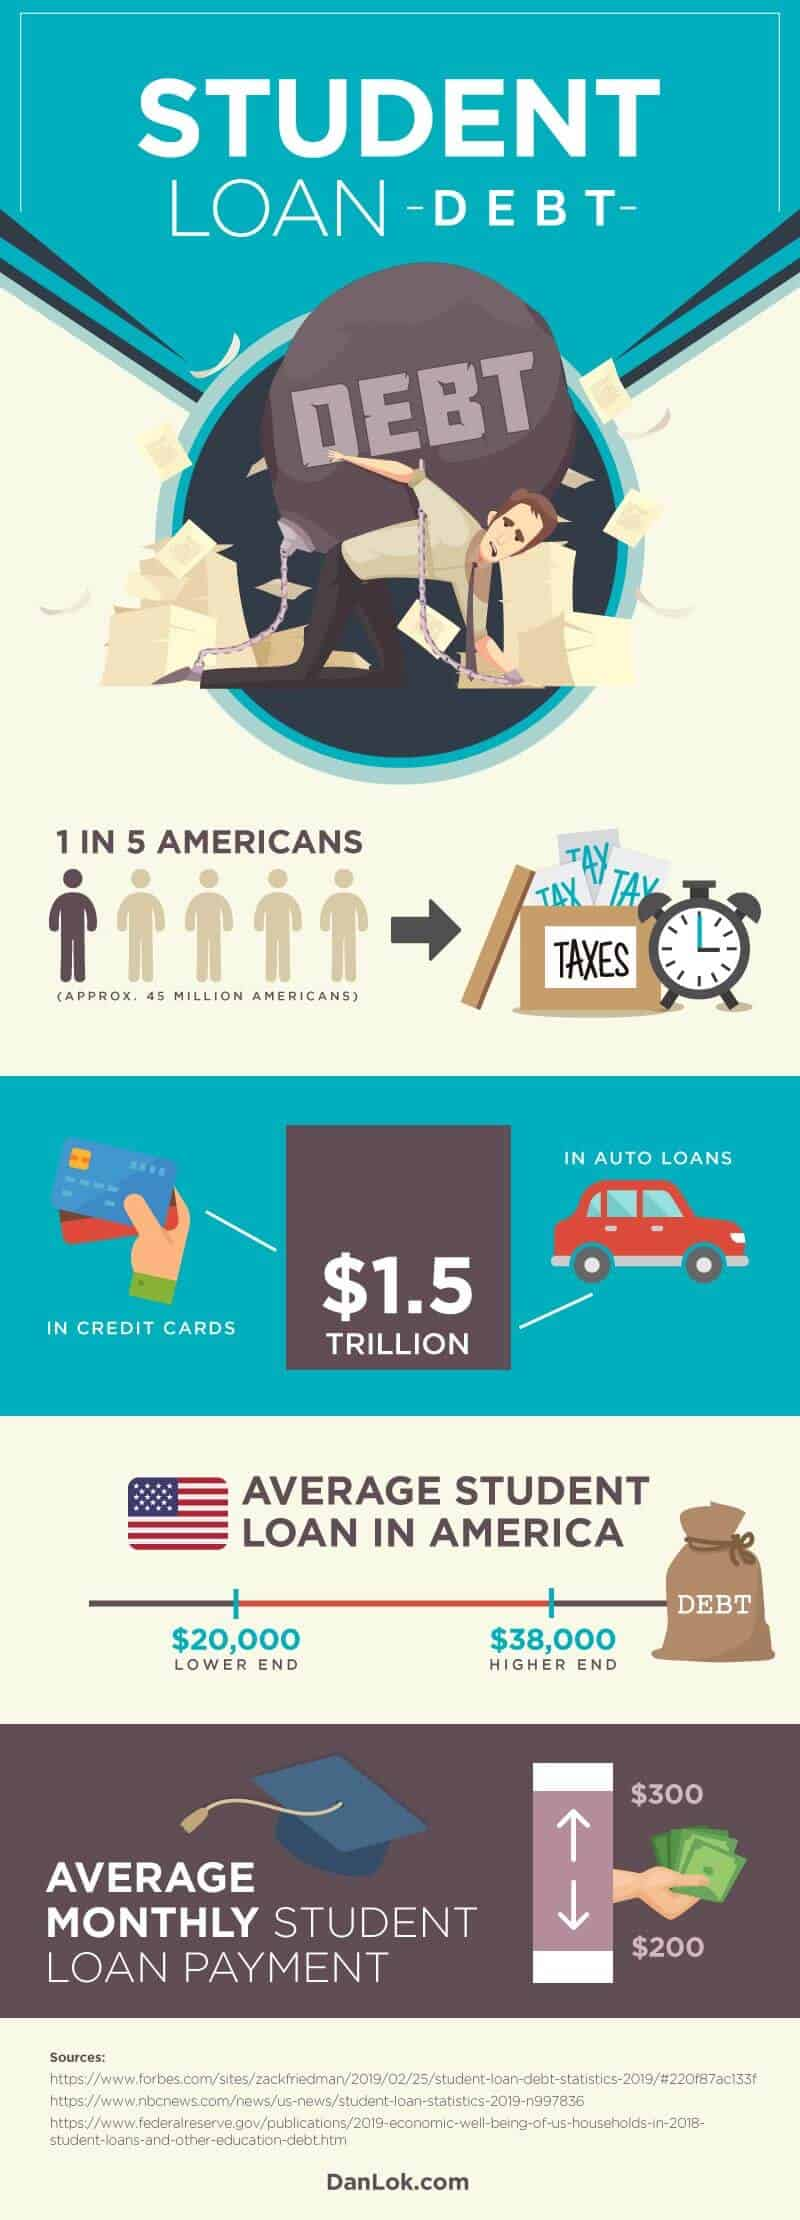 S12_Student-Loan-Debt-Infographic-OPTIMIZED